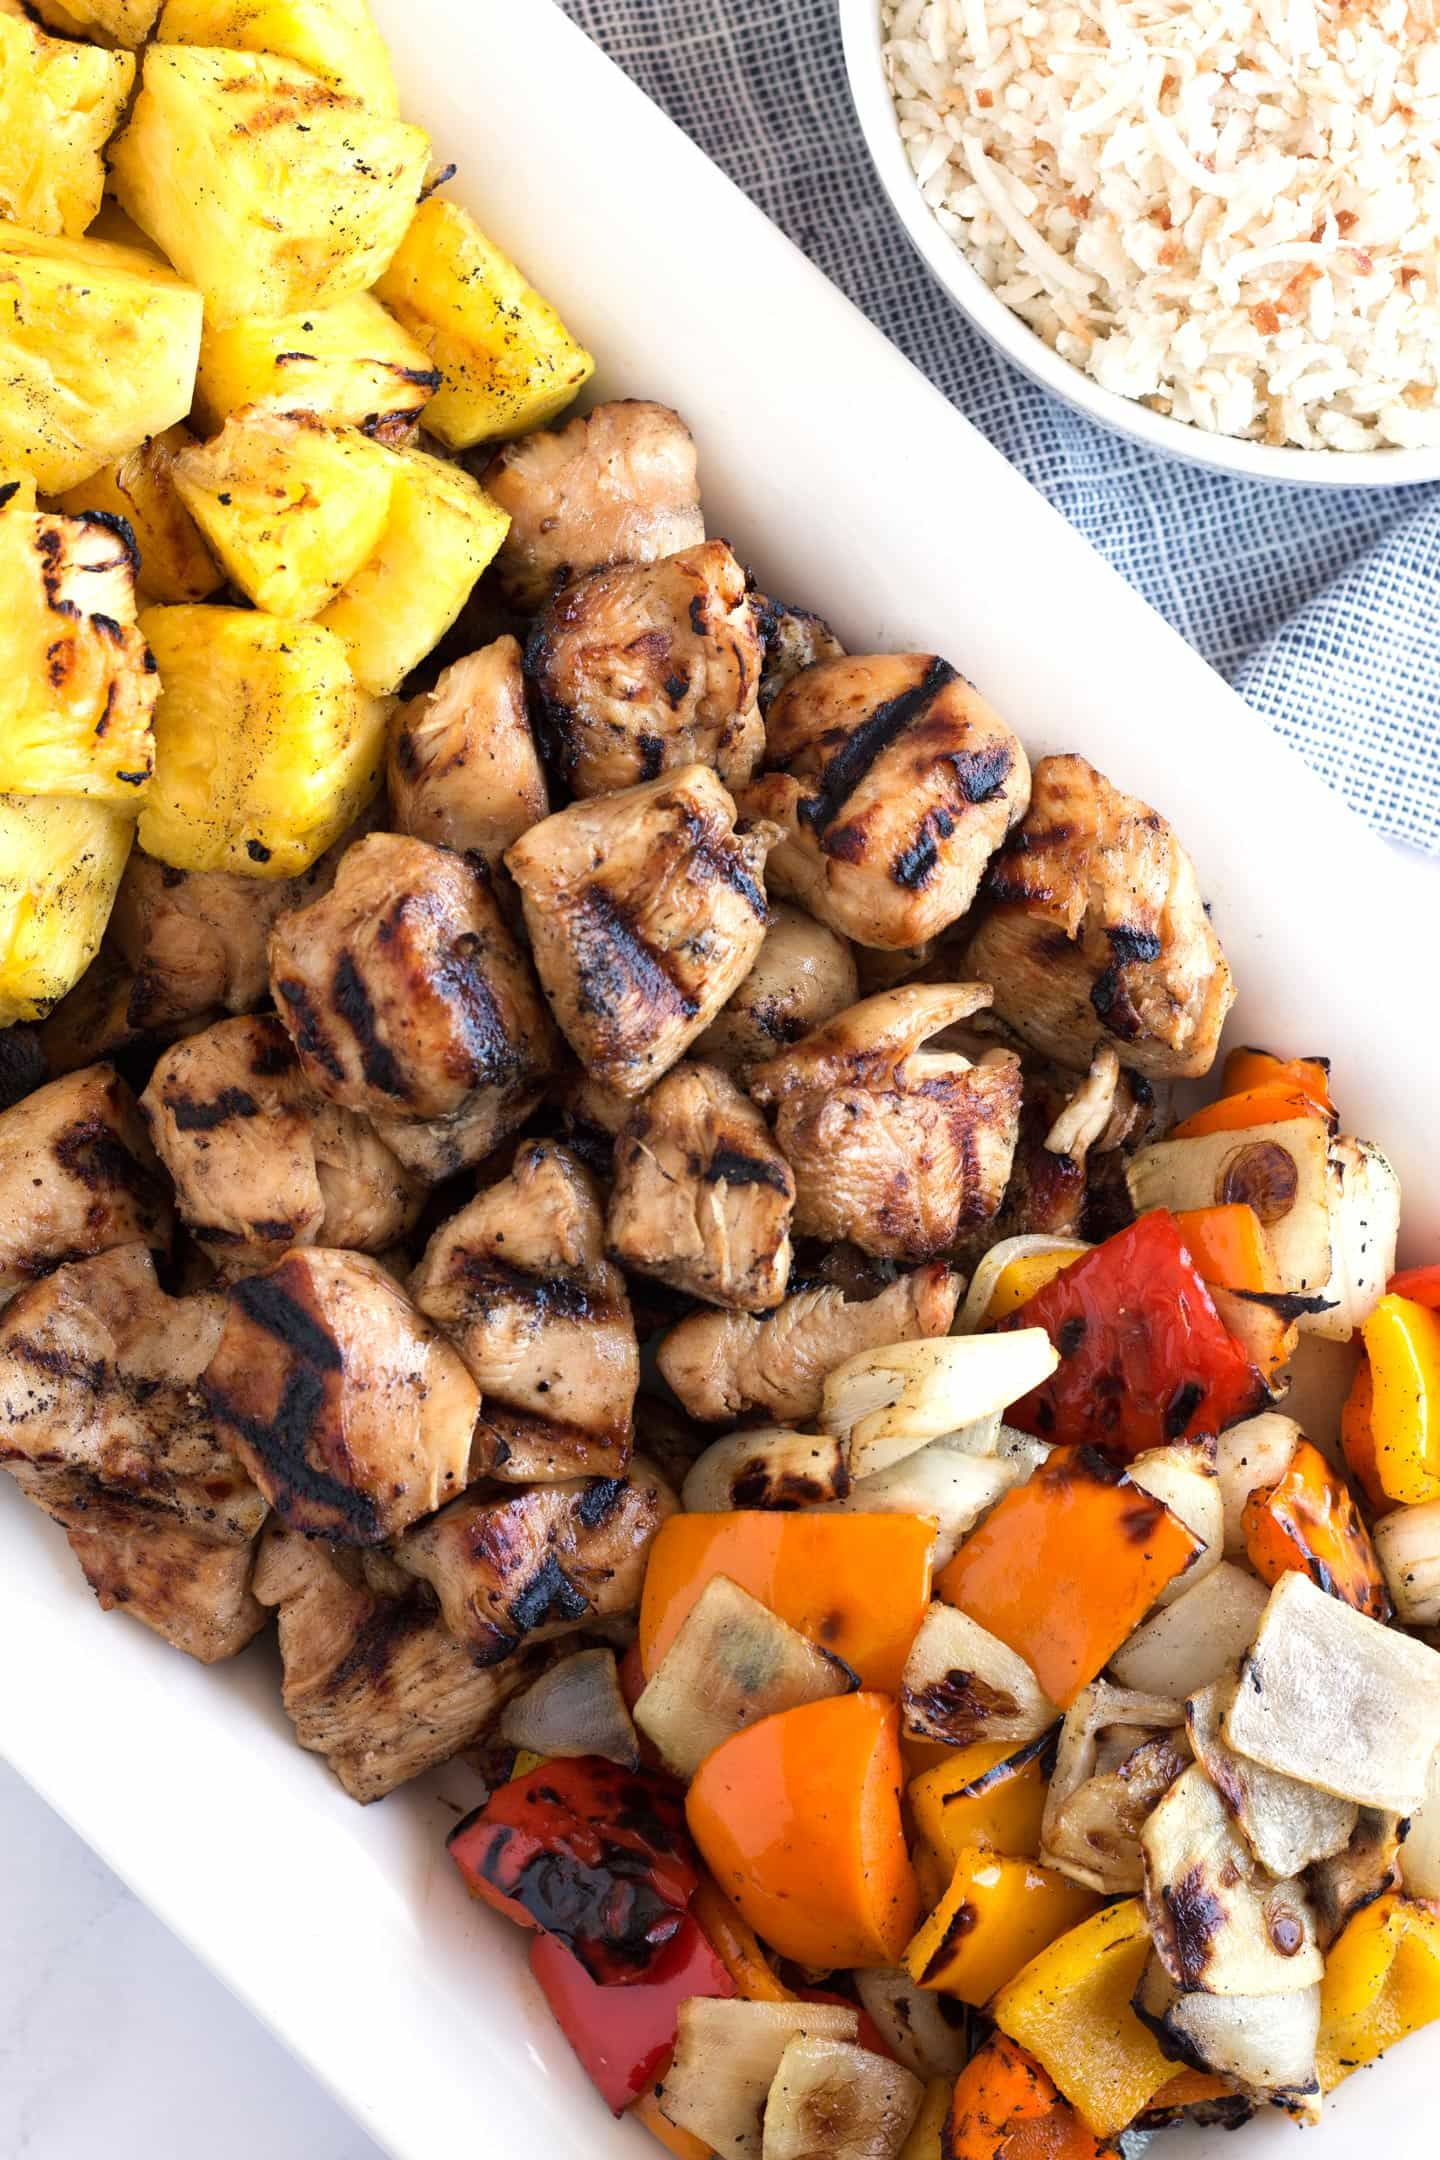 Overhead view of platter with Grilled Honey Chicken Kabobs.